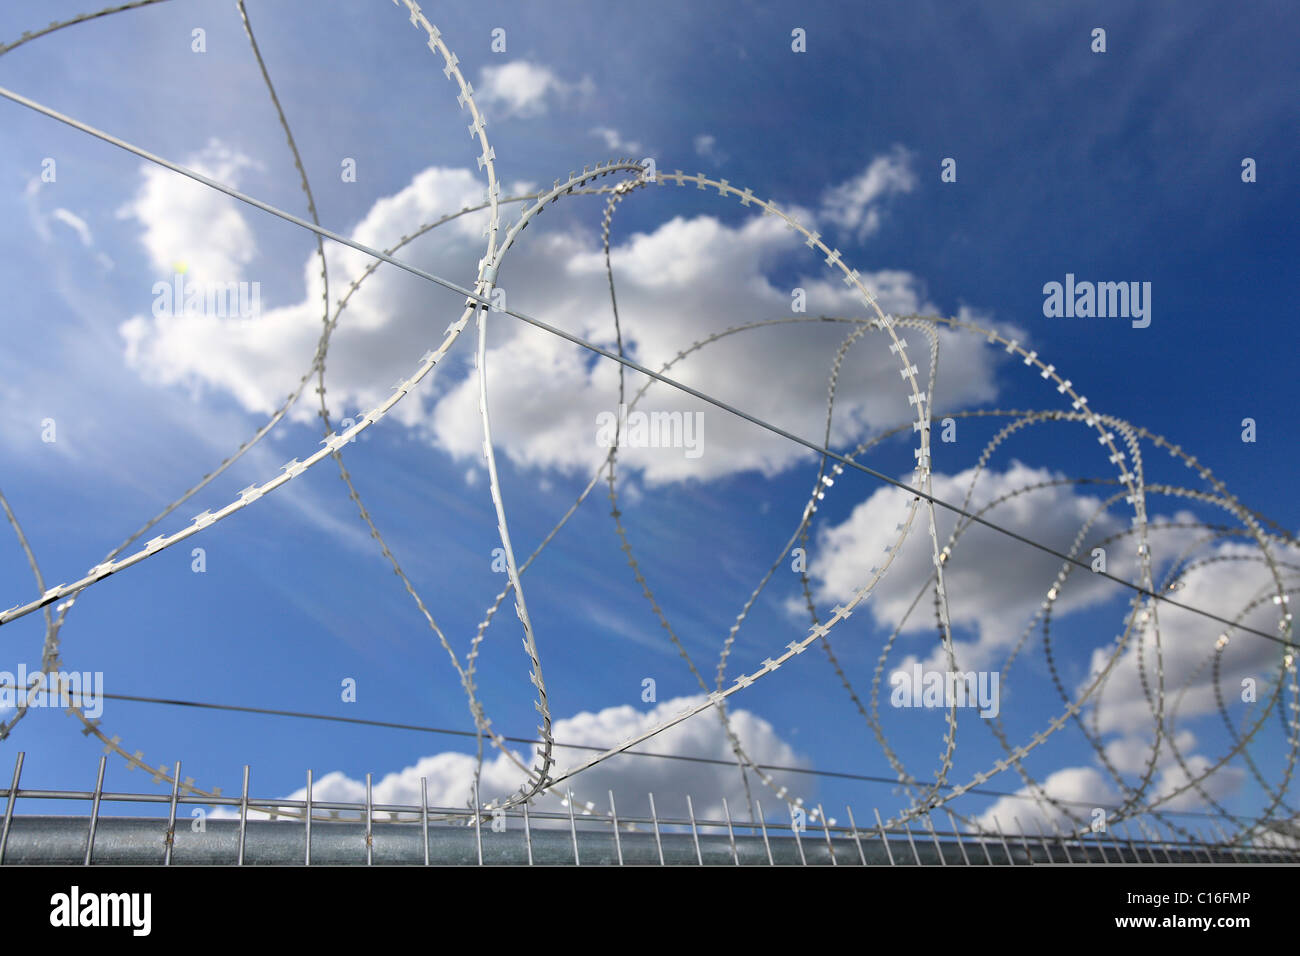 Barbed-wire fence, blue sky - Stock Image